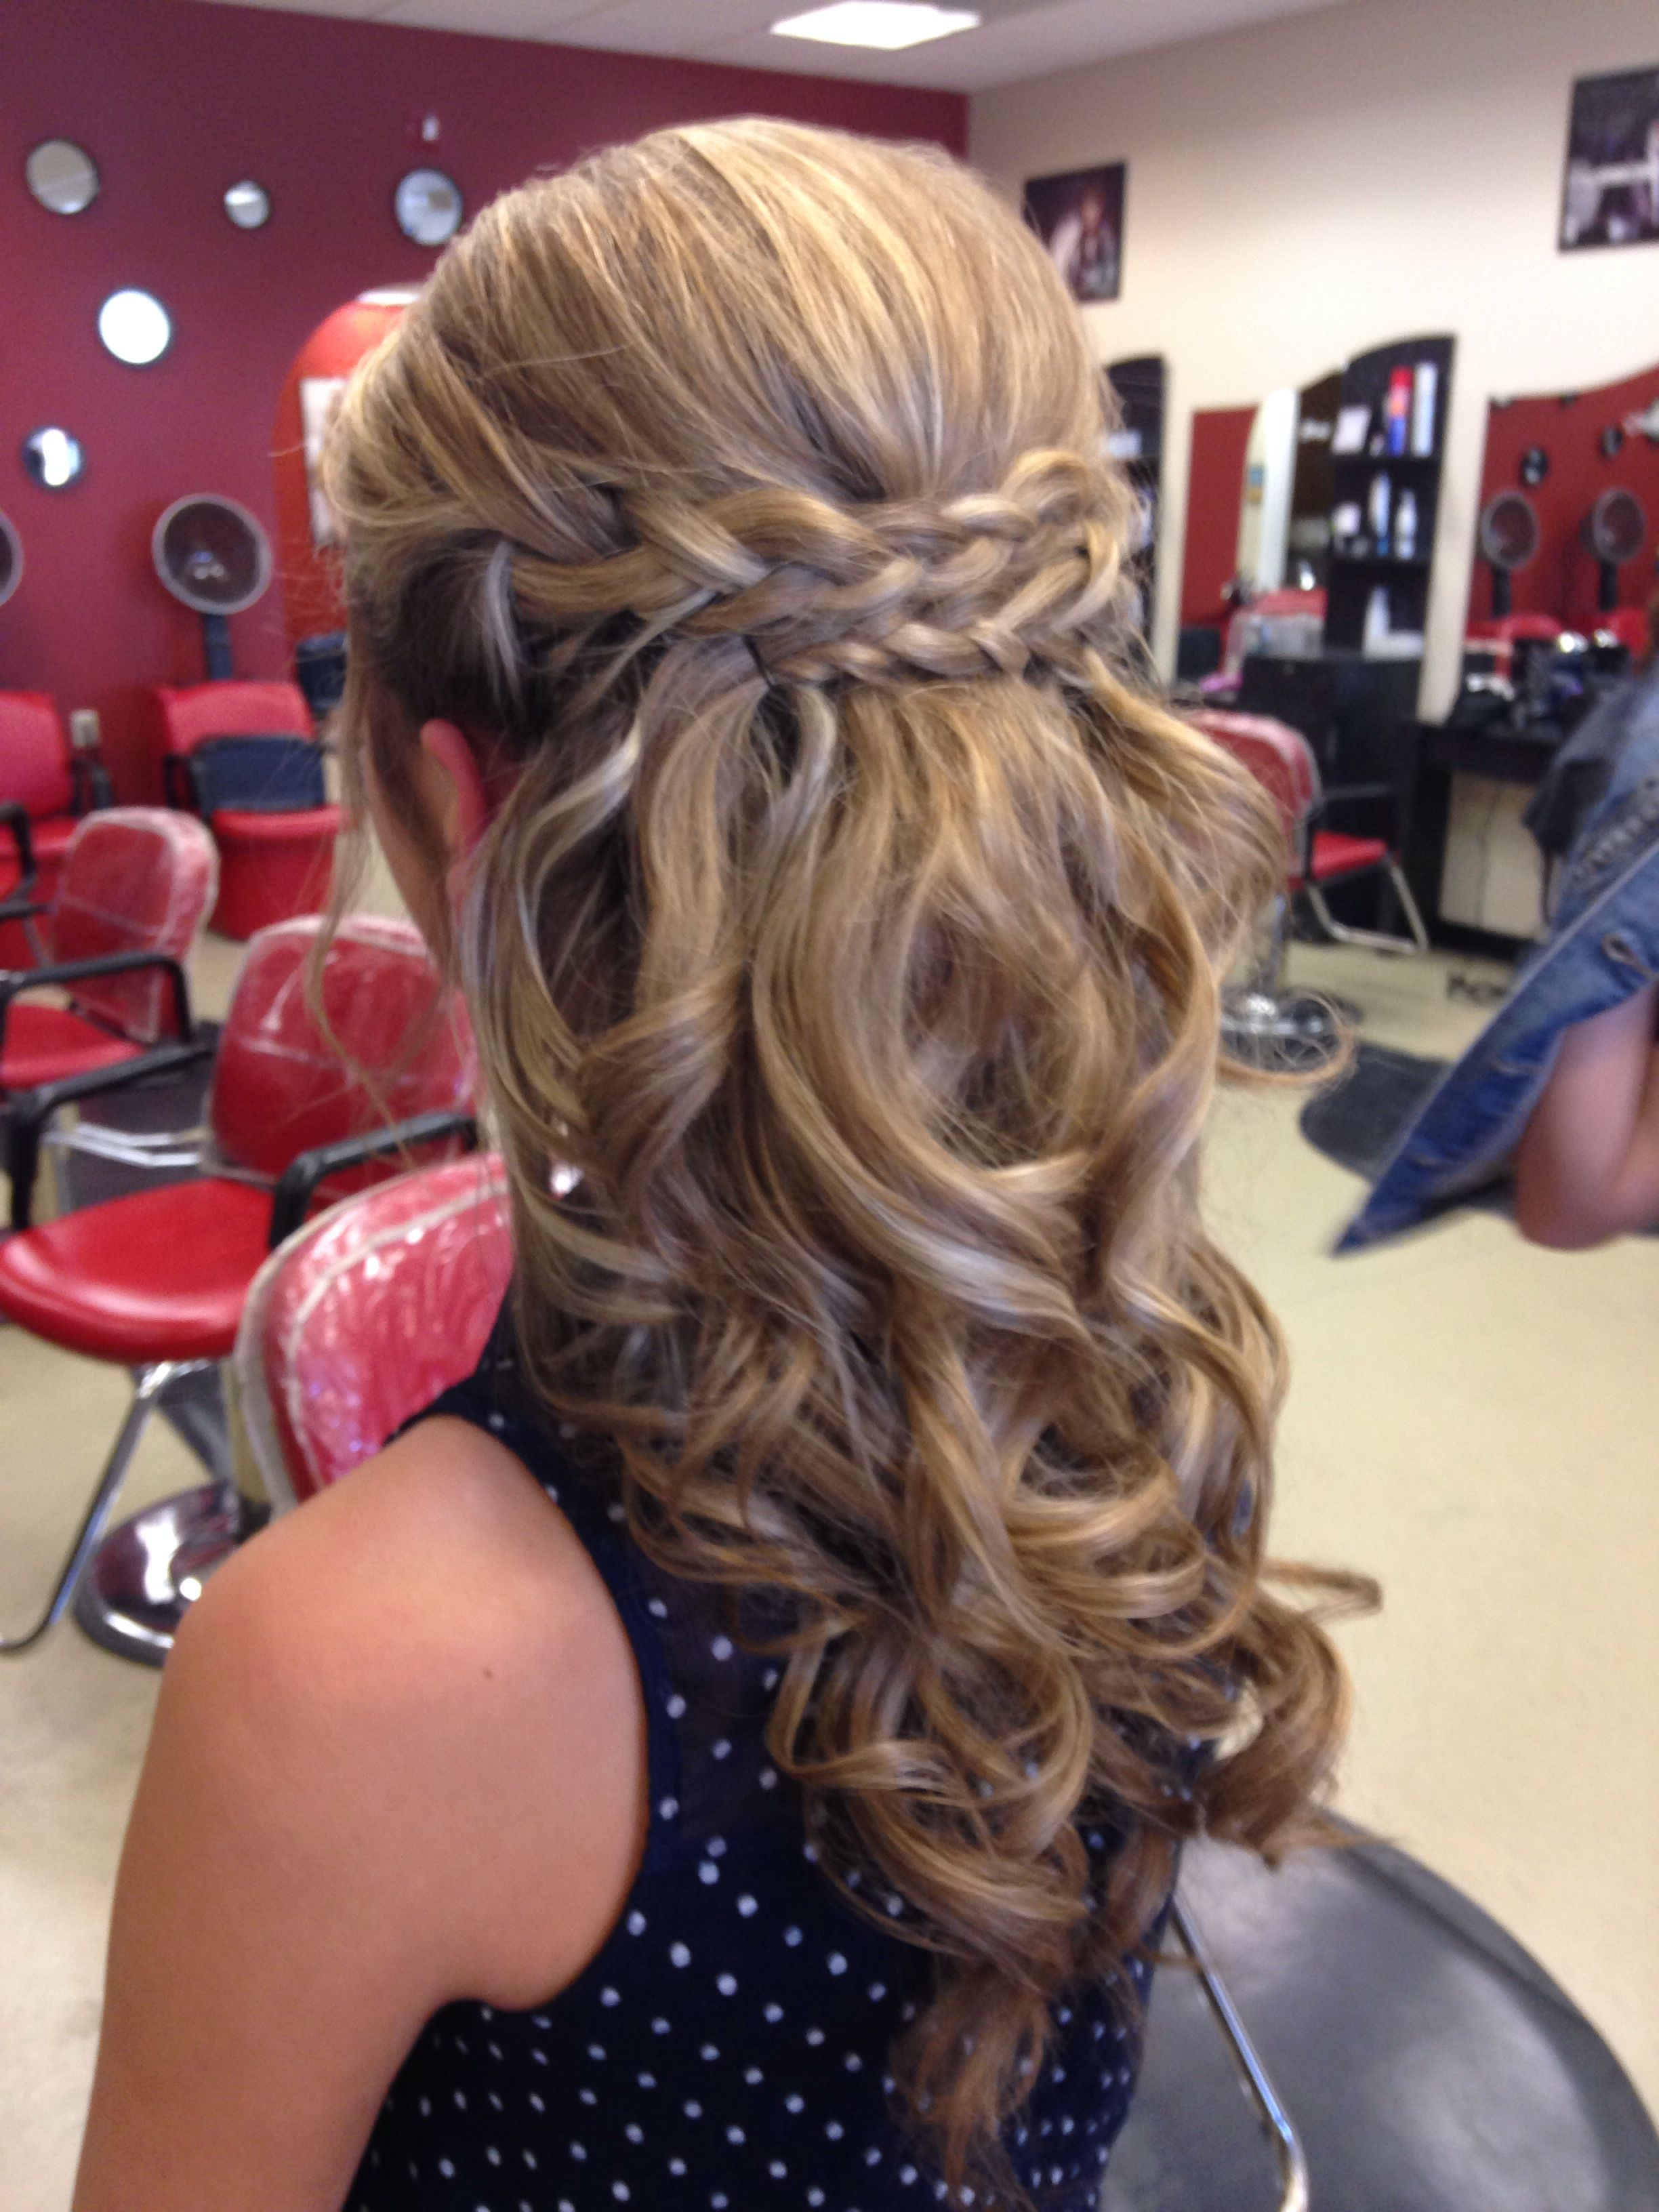 Pin By Izzy Nordstrom On Braids Hair Styles Semi Formal Hairstyles Formal Hairstyles For Long Hair